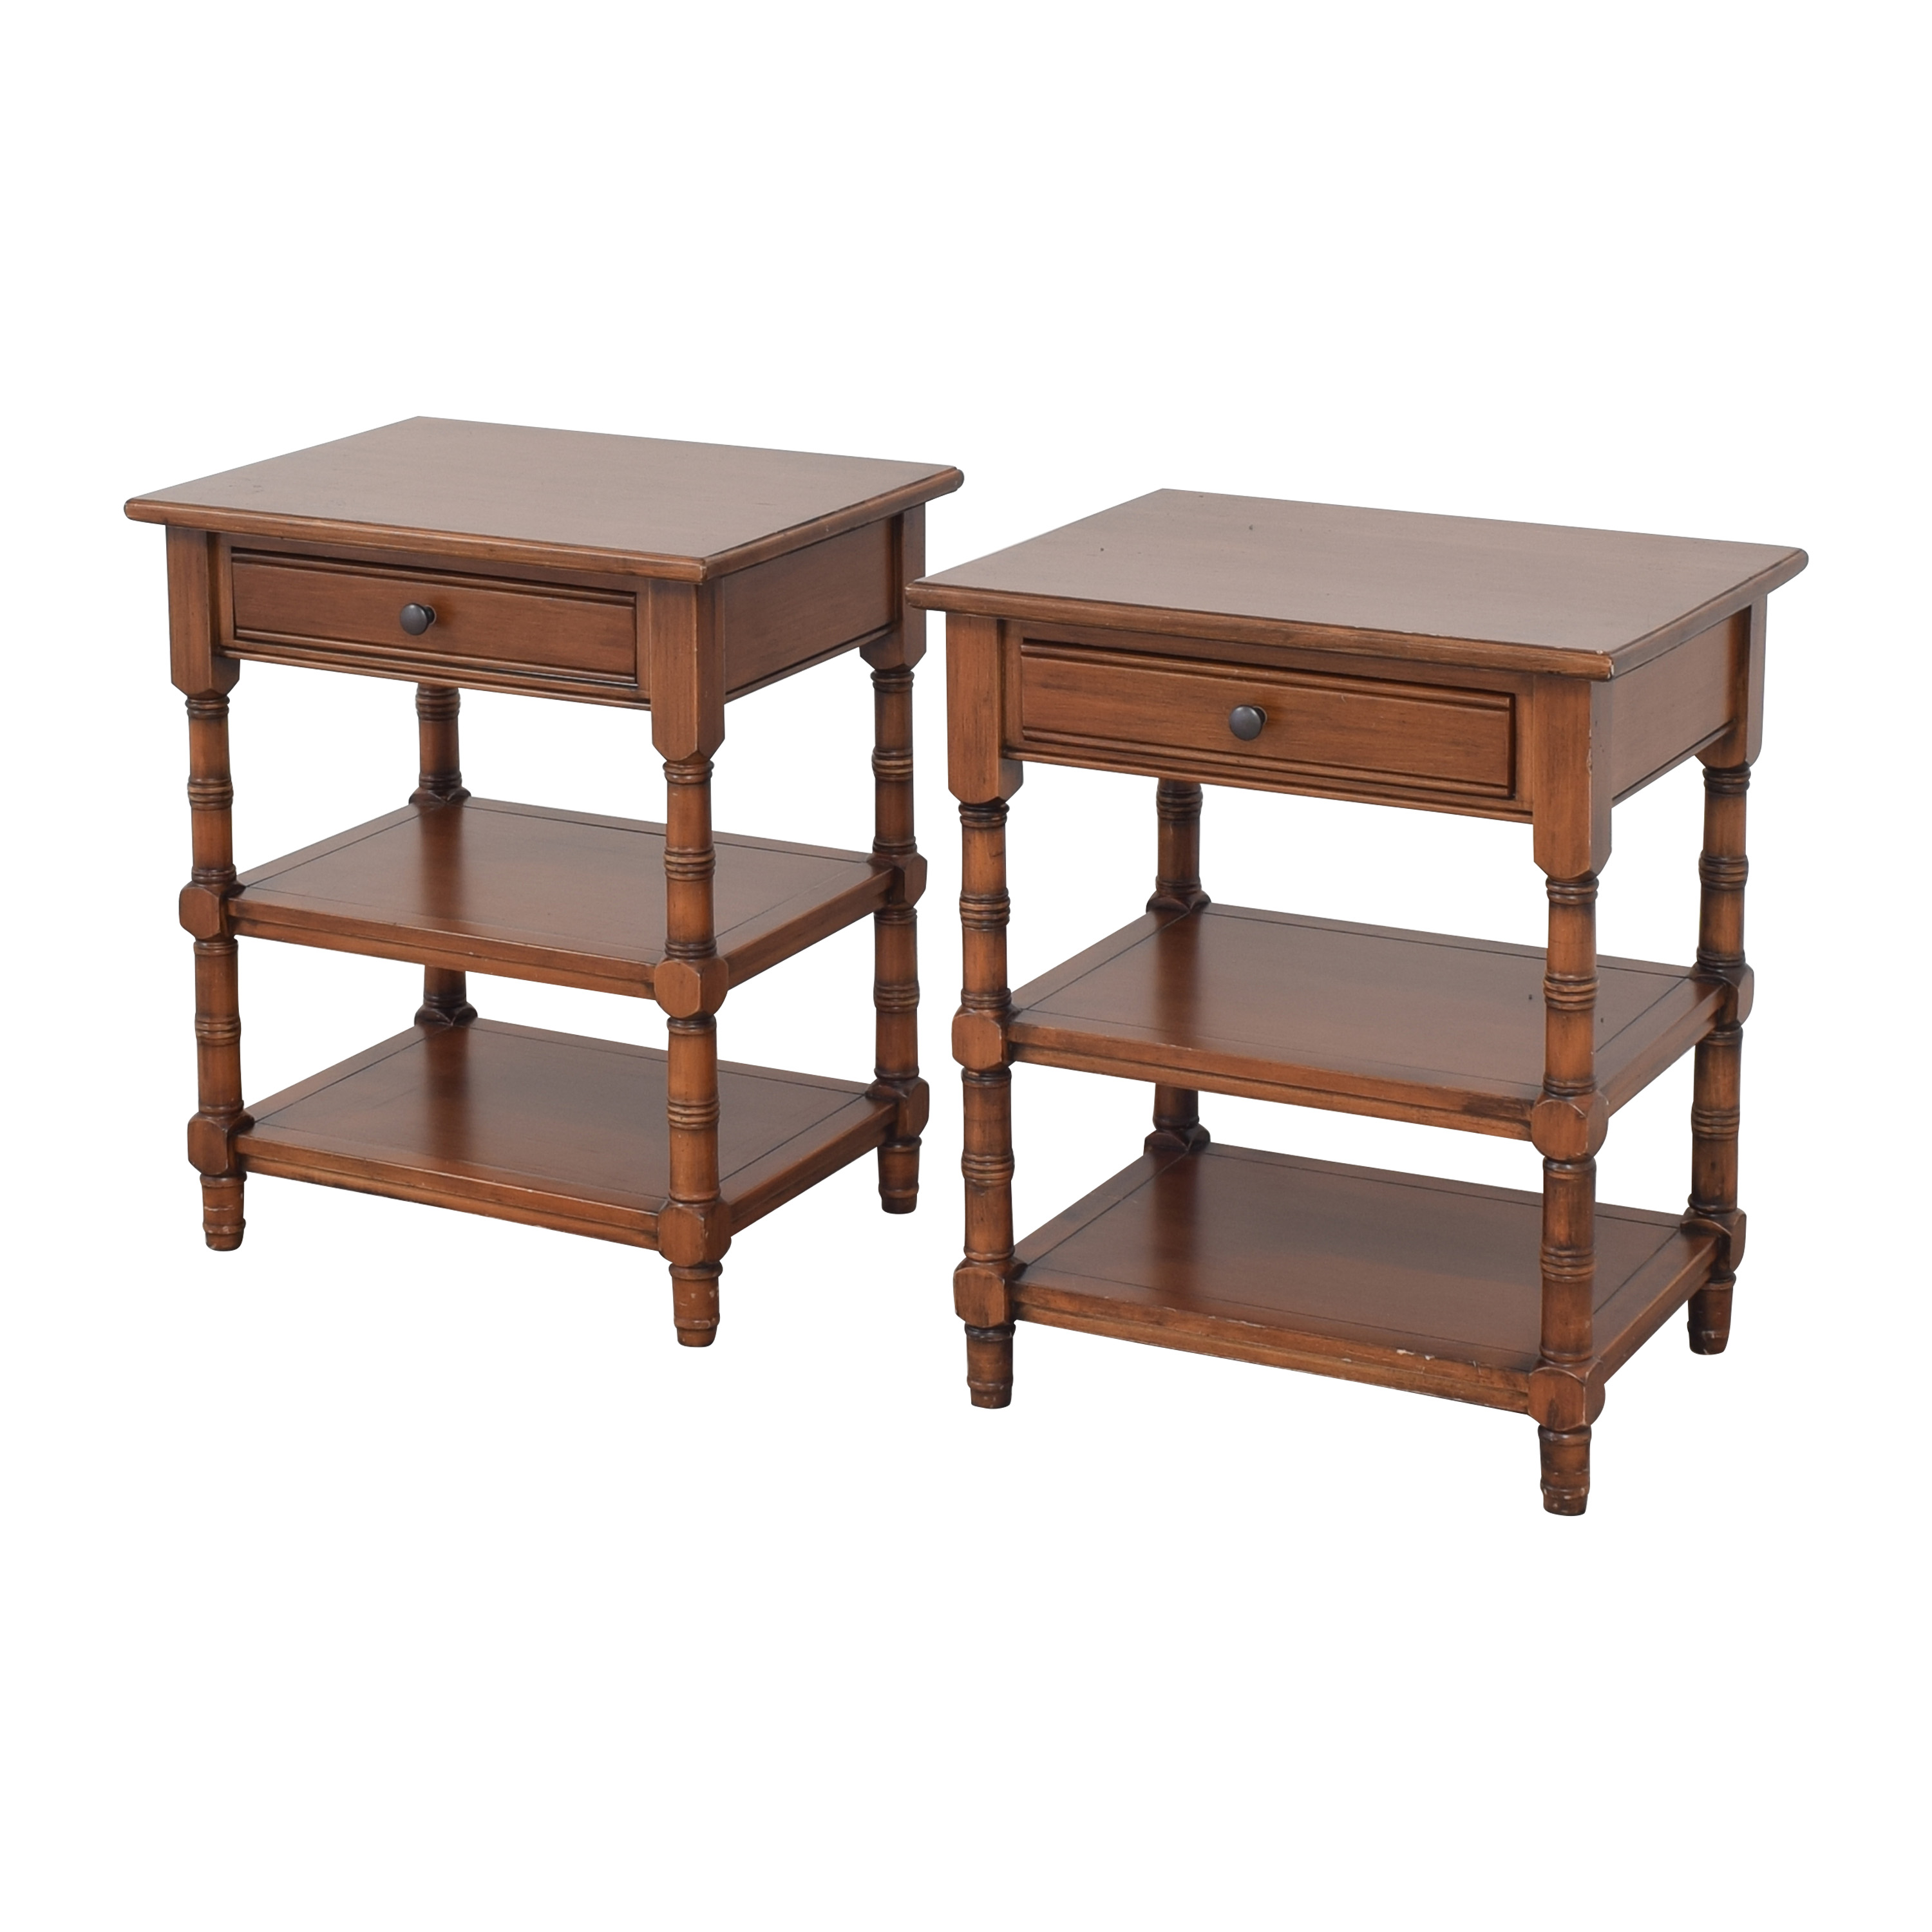 Country Willow Country Willow Nightstands dimensions